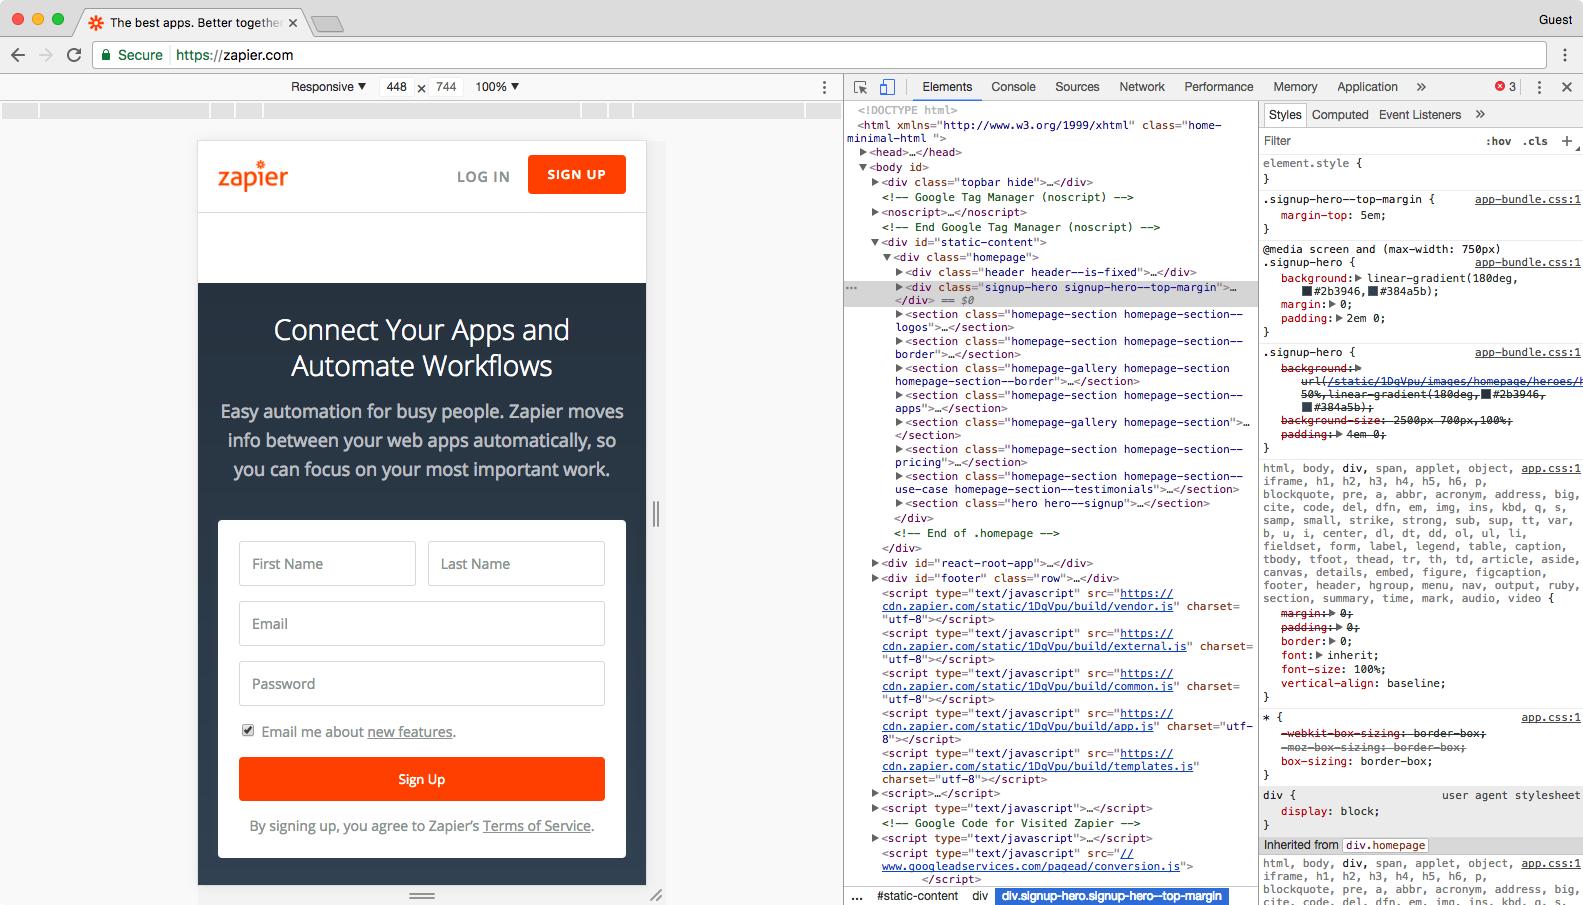 Inspect Element on Zapier's page